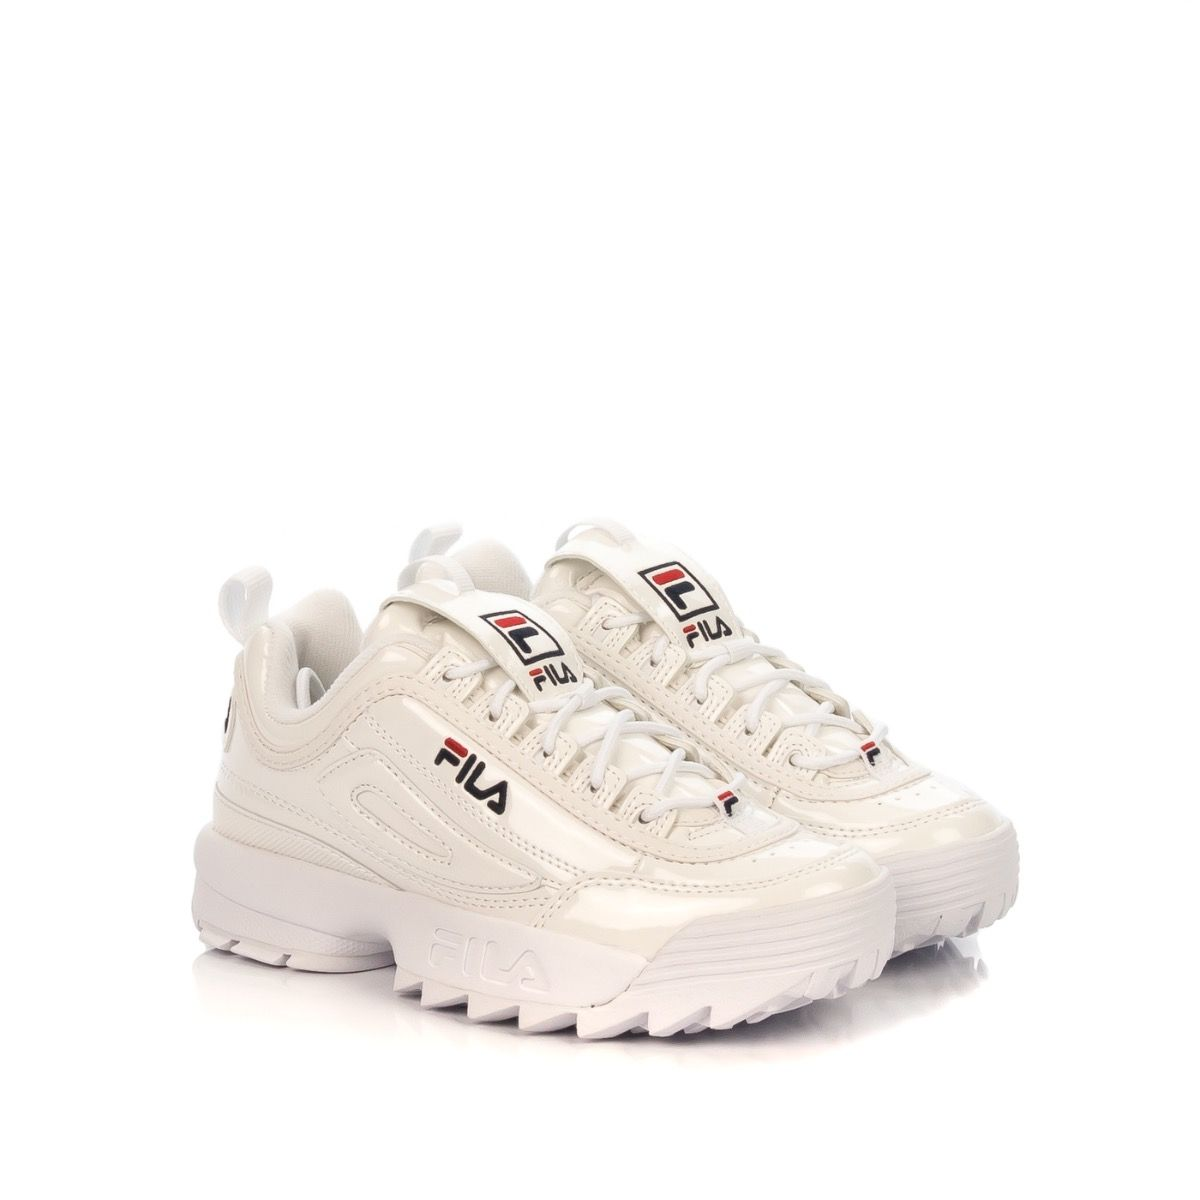 FILA DISRUPTOR LOW|sneakers donna|vernice bianco|Shoe Center ...